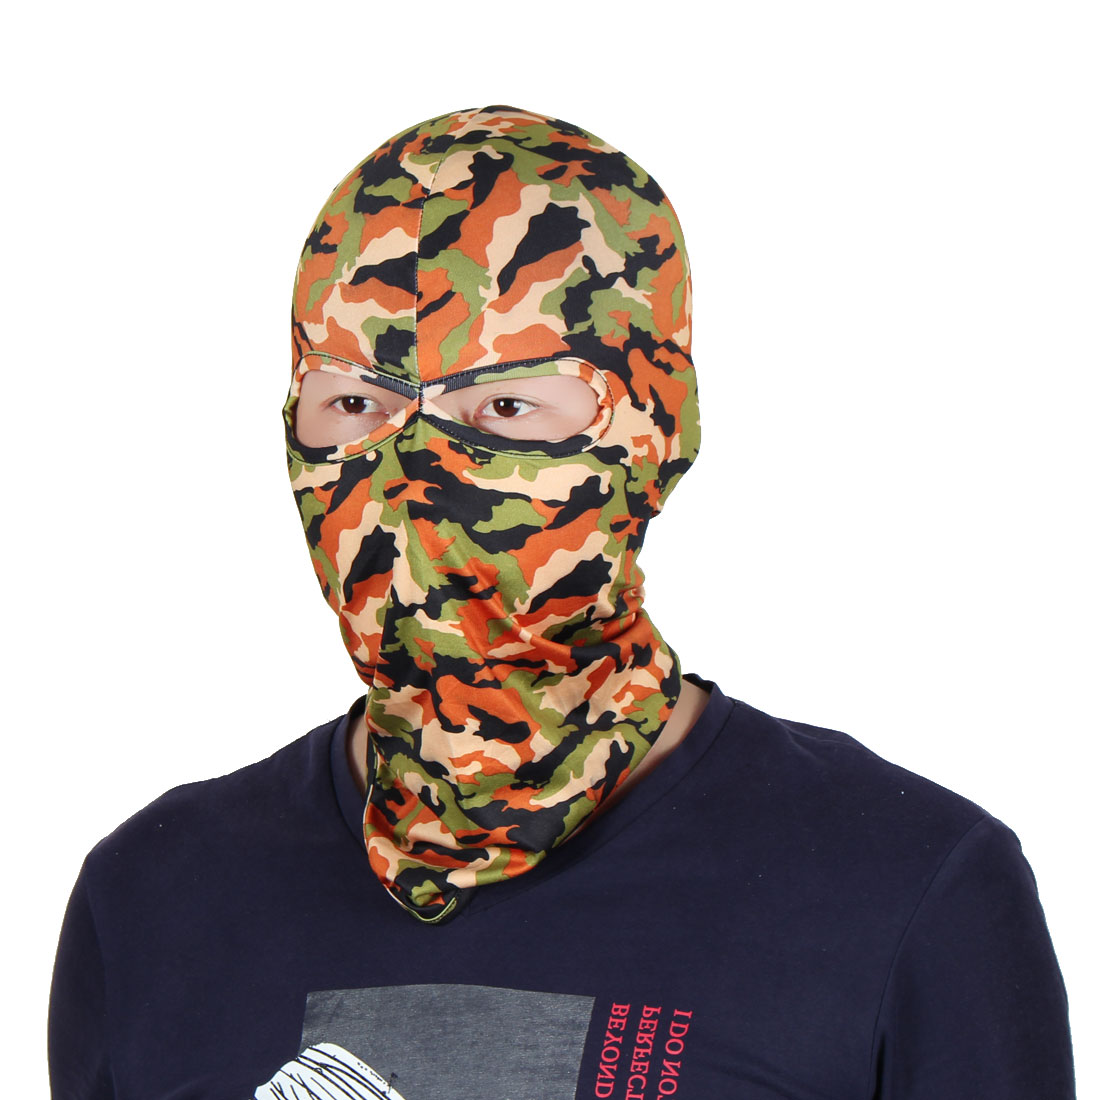 Full Coverage Face Mask Activities Neck Protector Hood Helmet Balaclava Colorful by